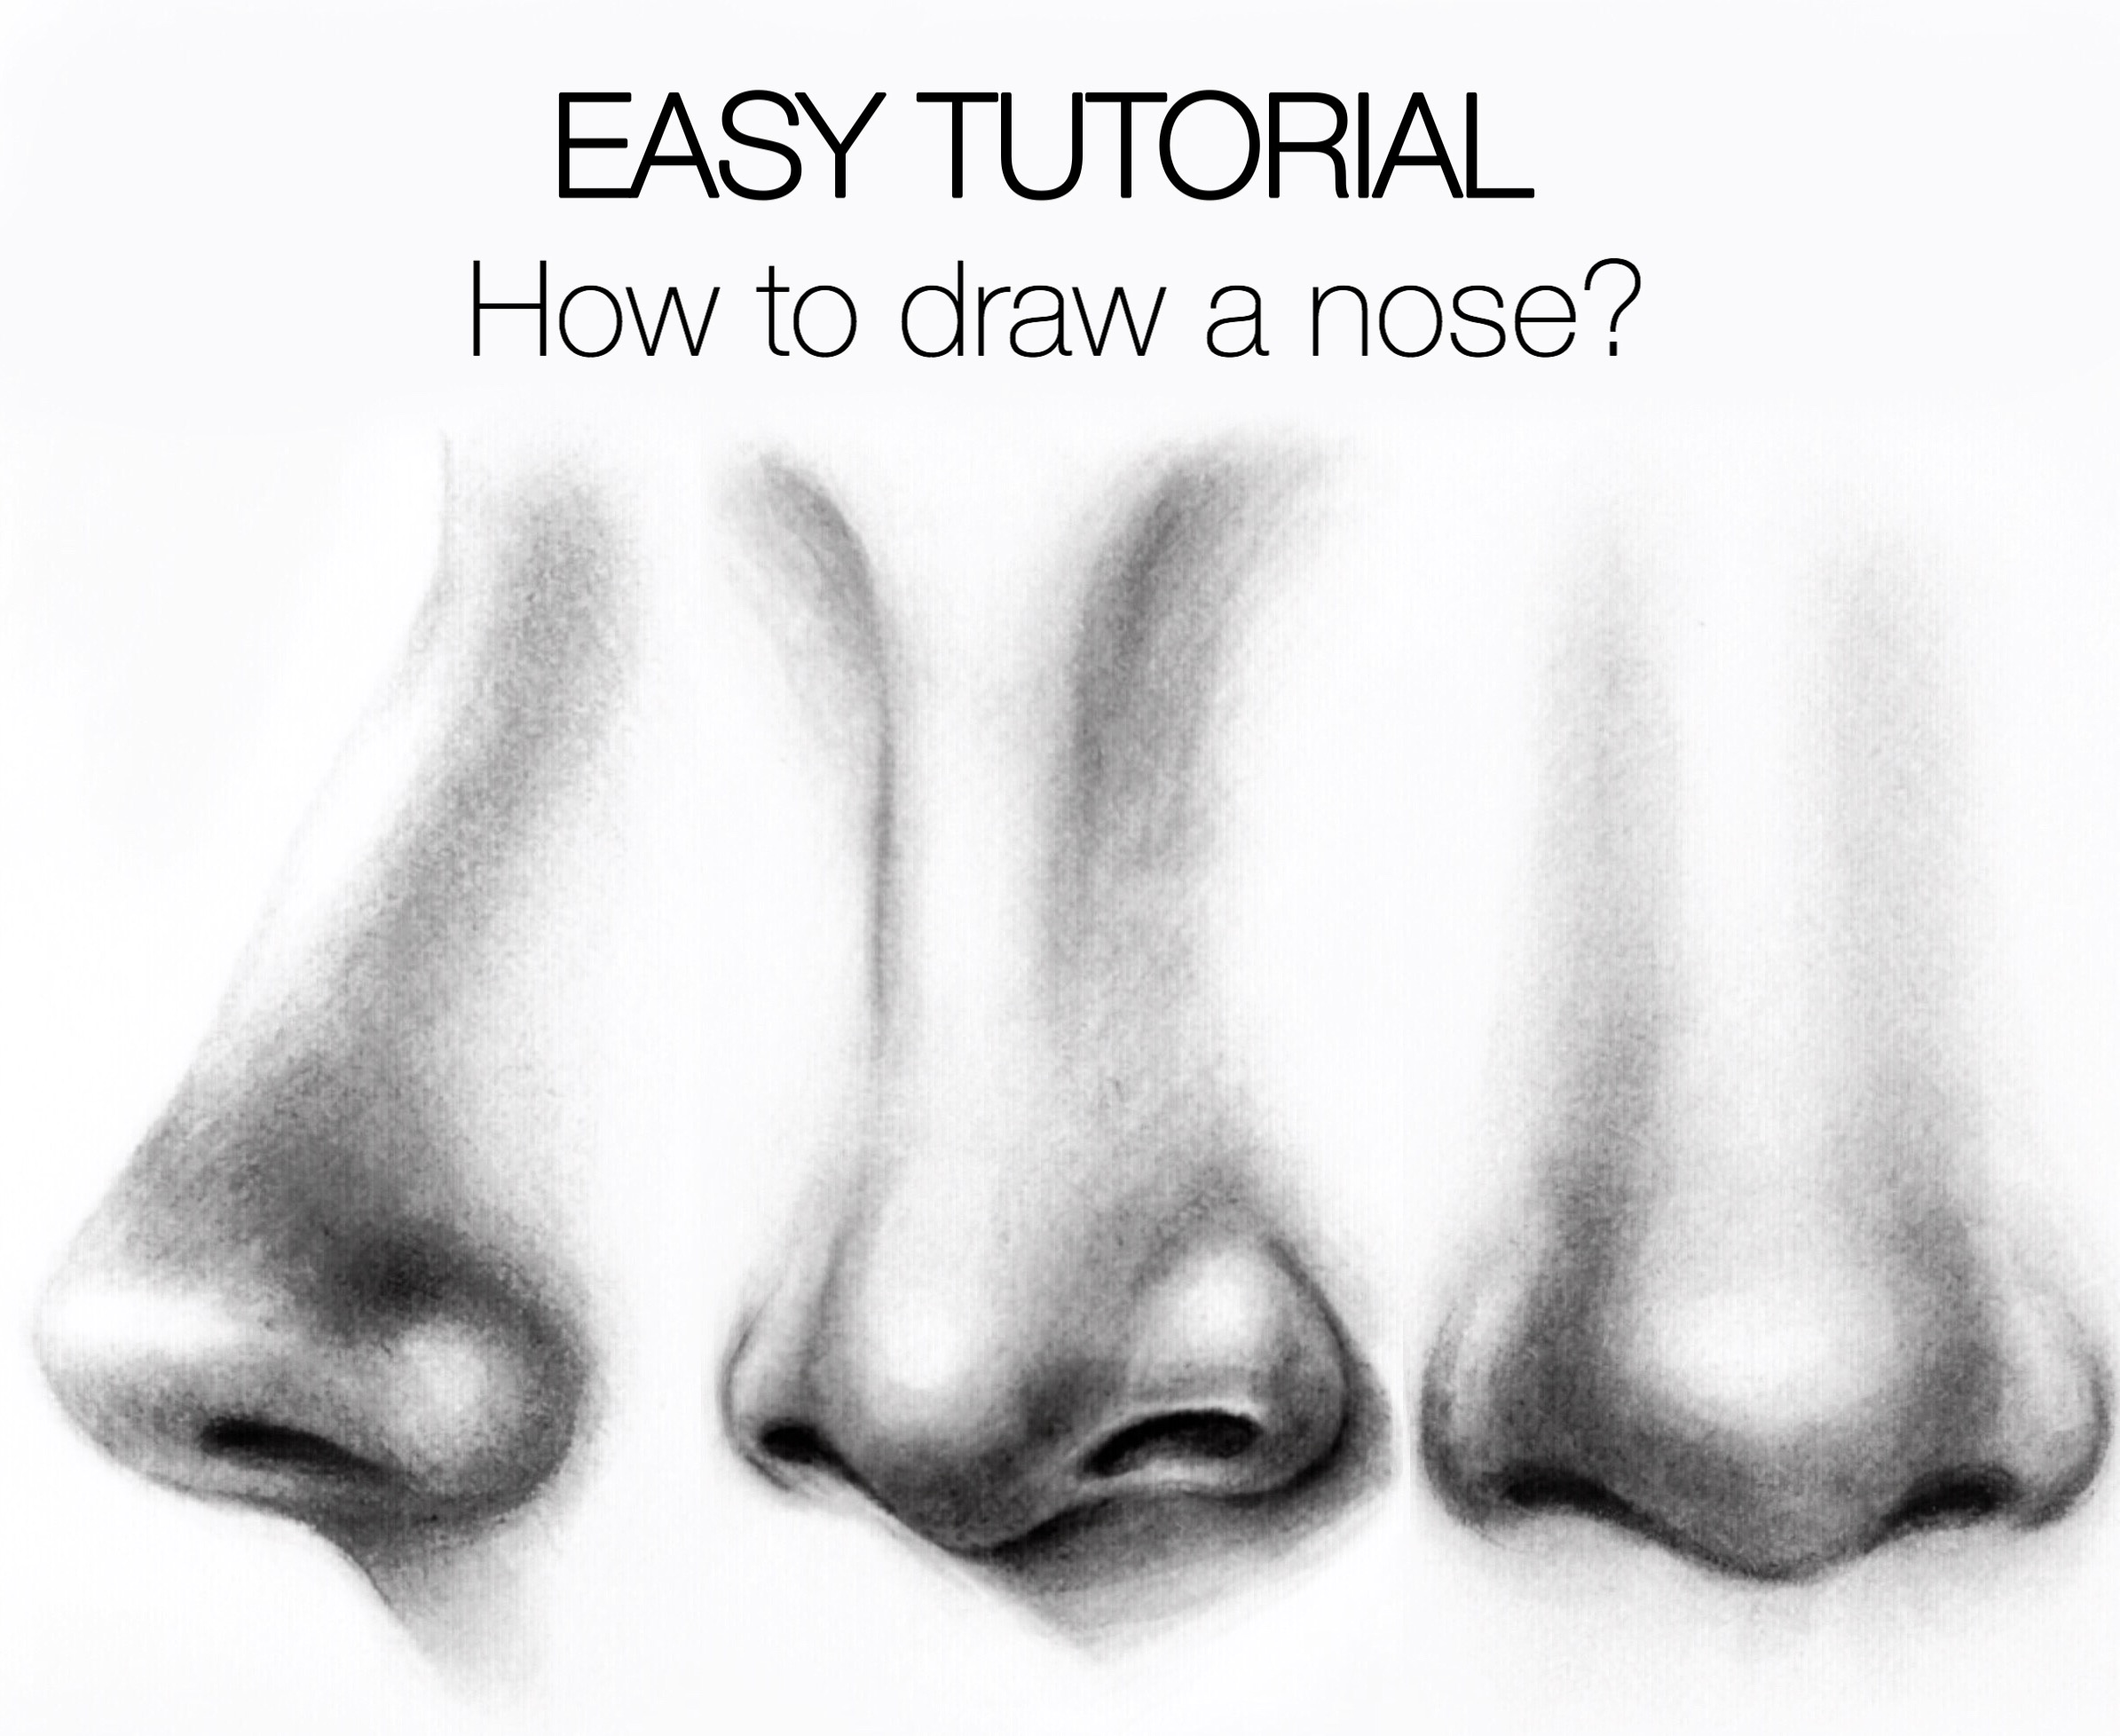 Easy tutorial how to draw a nose silvie mahdal the art of pencil